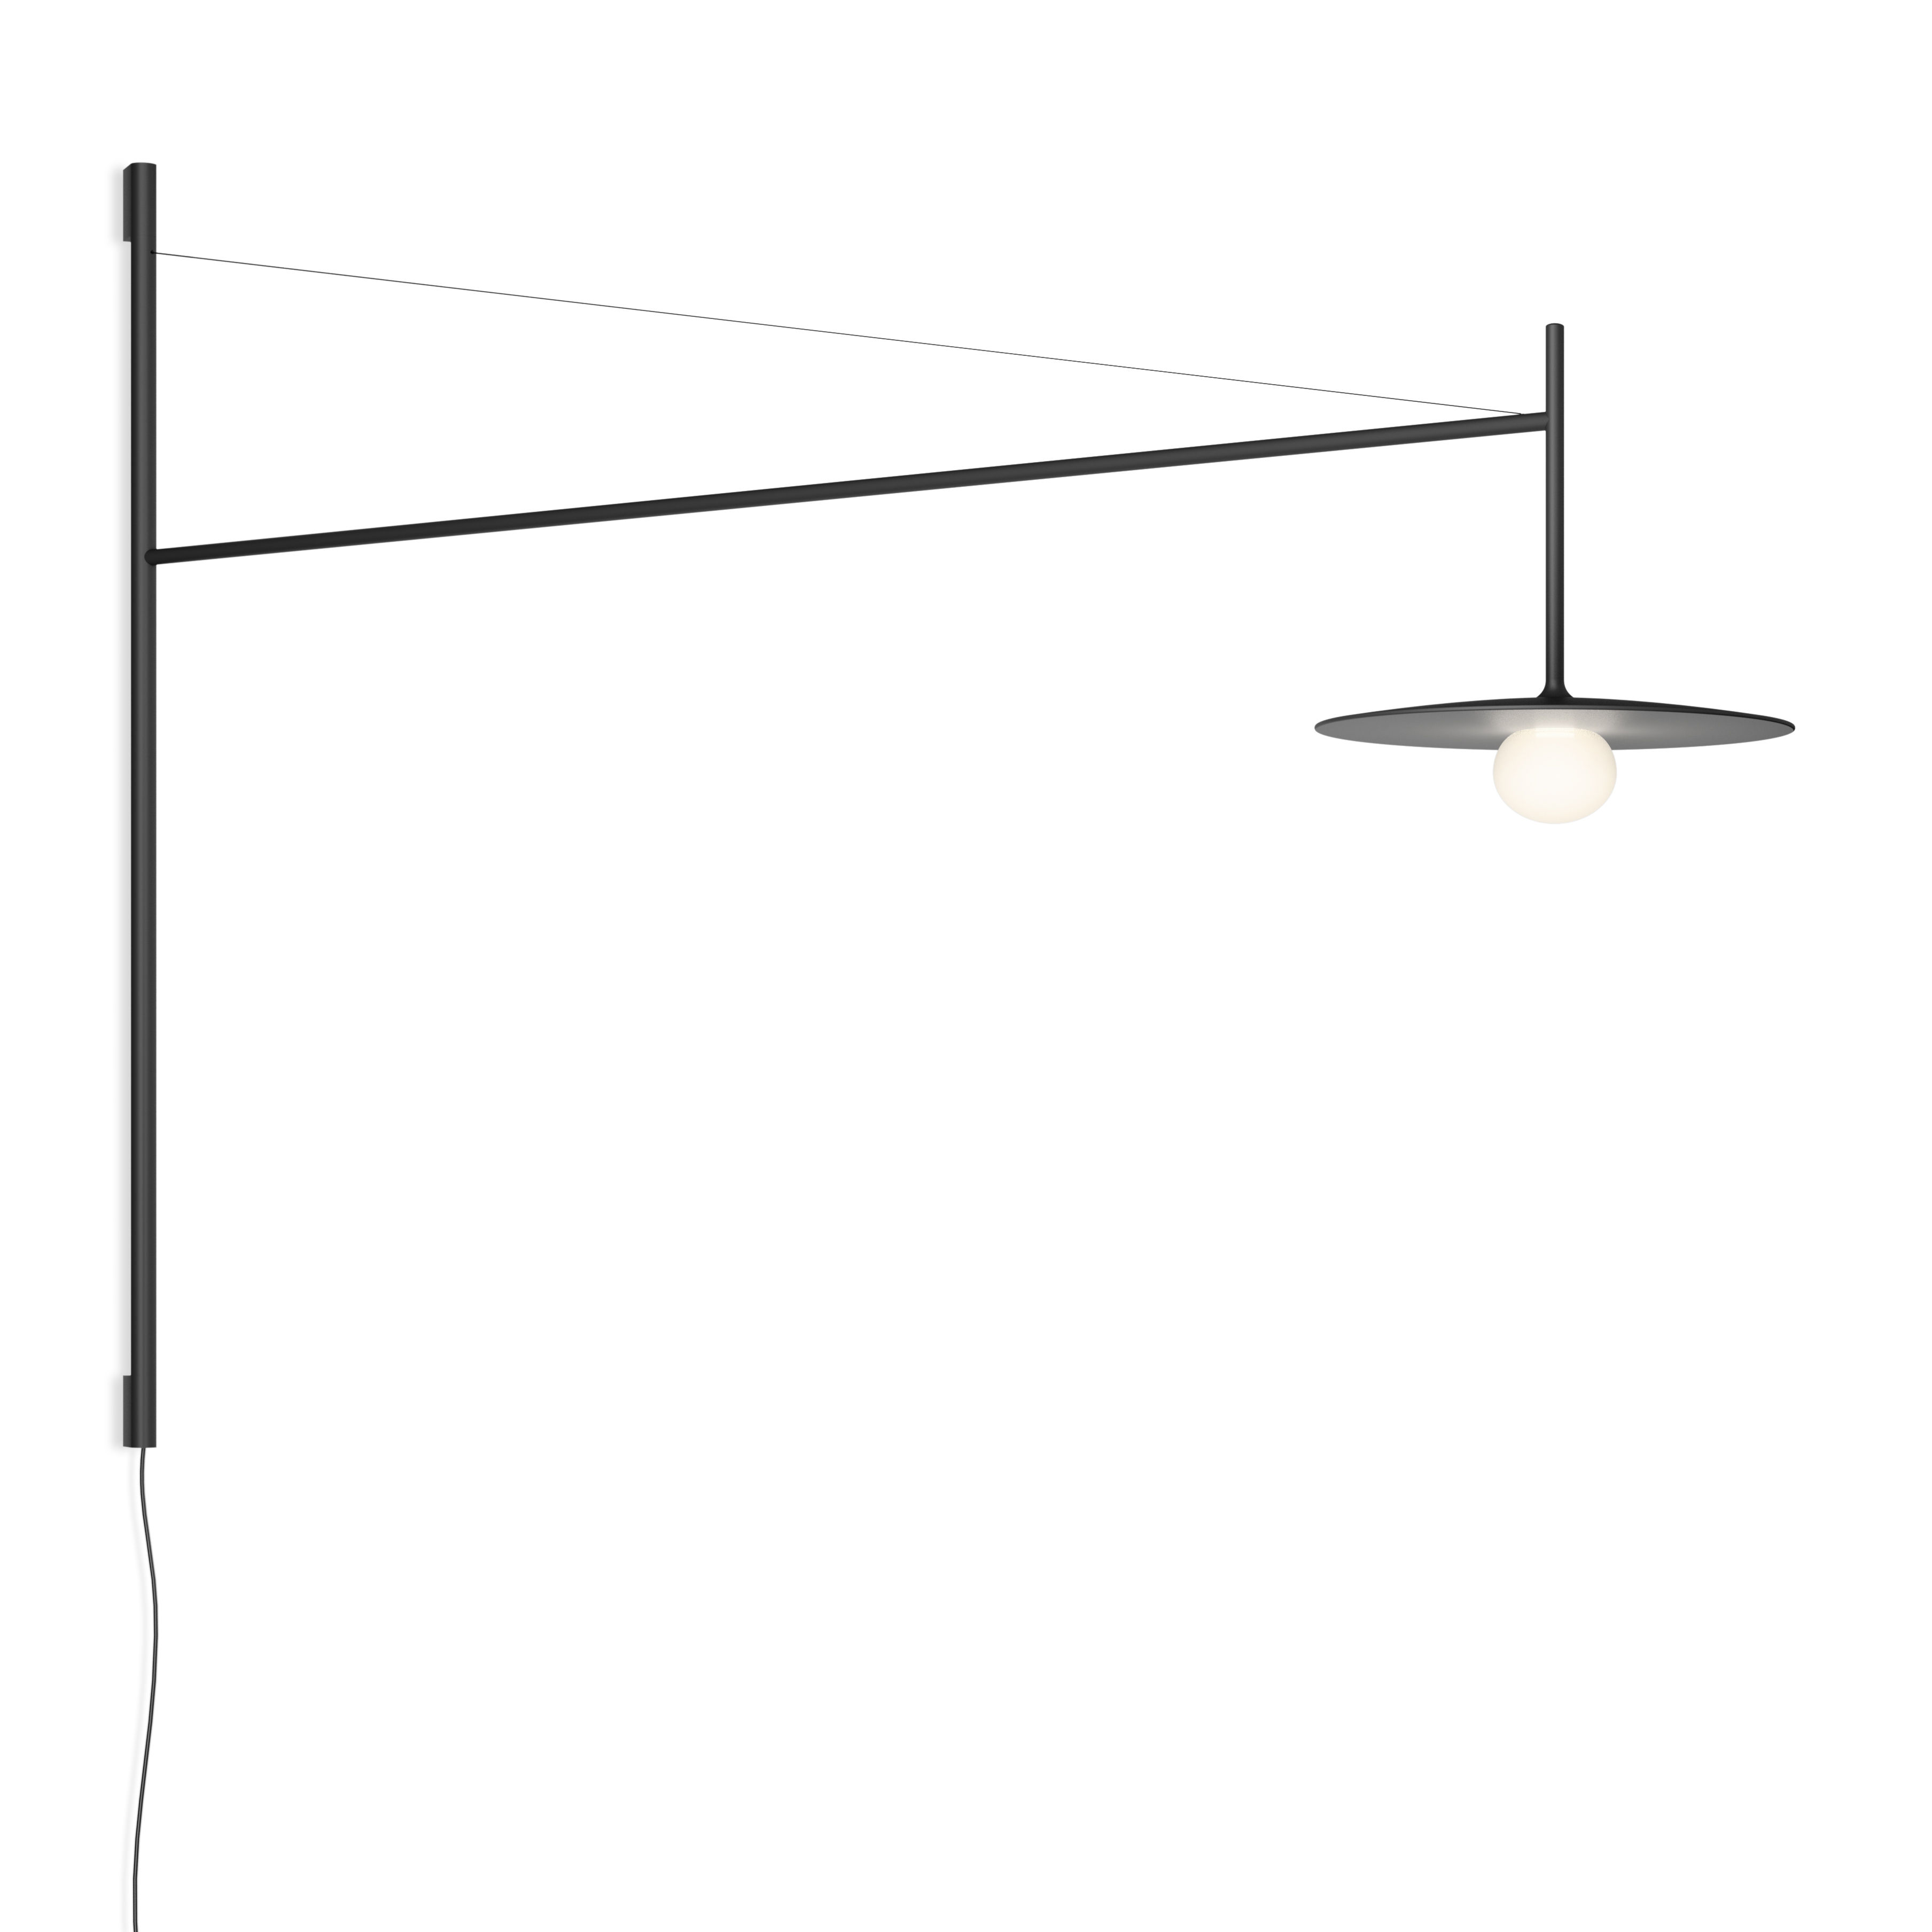 Lighting - Wall Lights - Tempo Disque Wall light with plug - / LED - Swivel arm L 122 cm by Vibia - Disc / Graphite grey - Blown glass, Lacquered aluminium, Lacquered steel